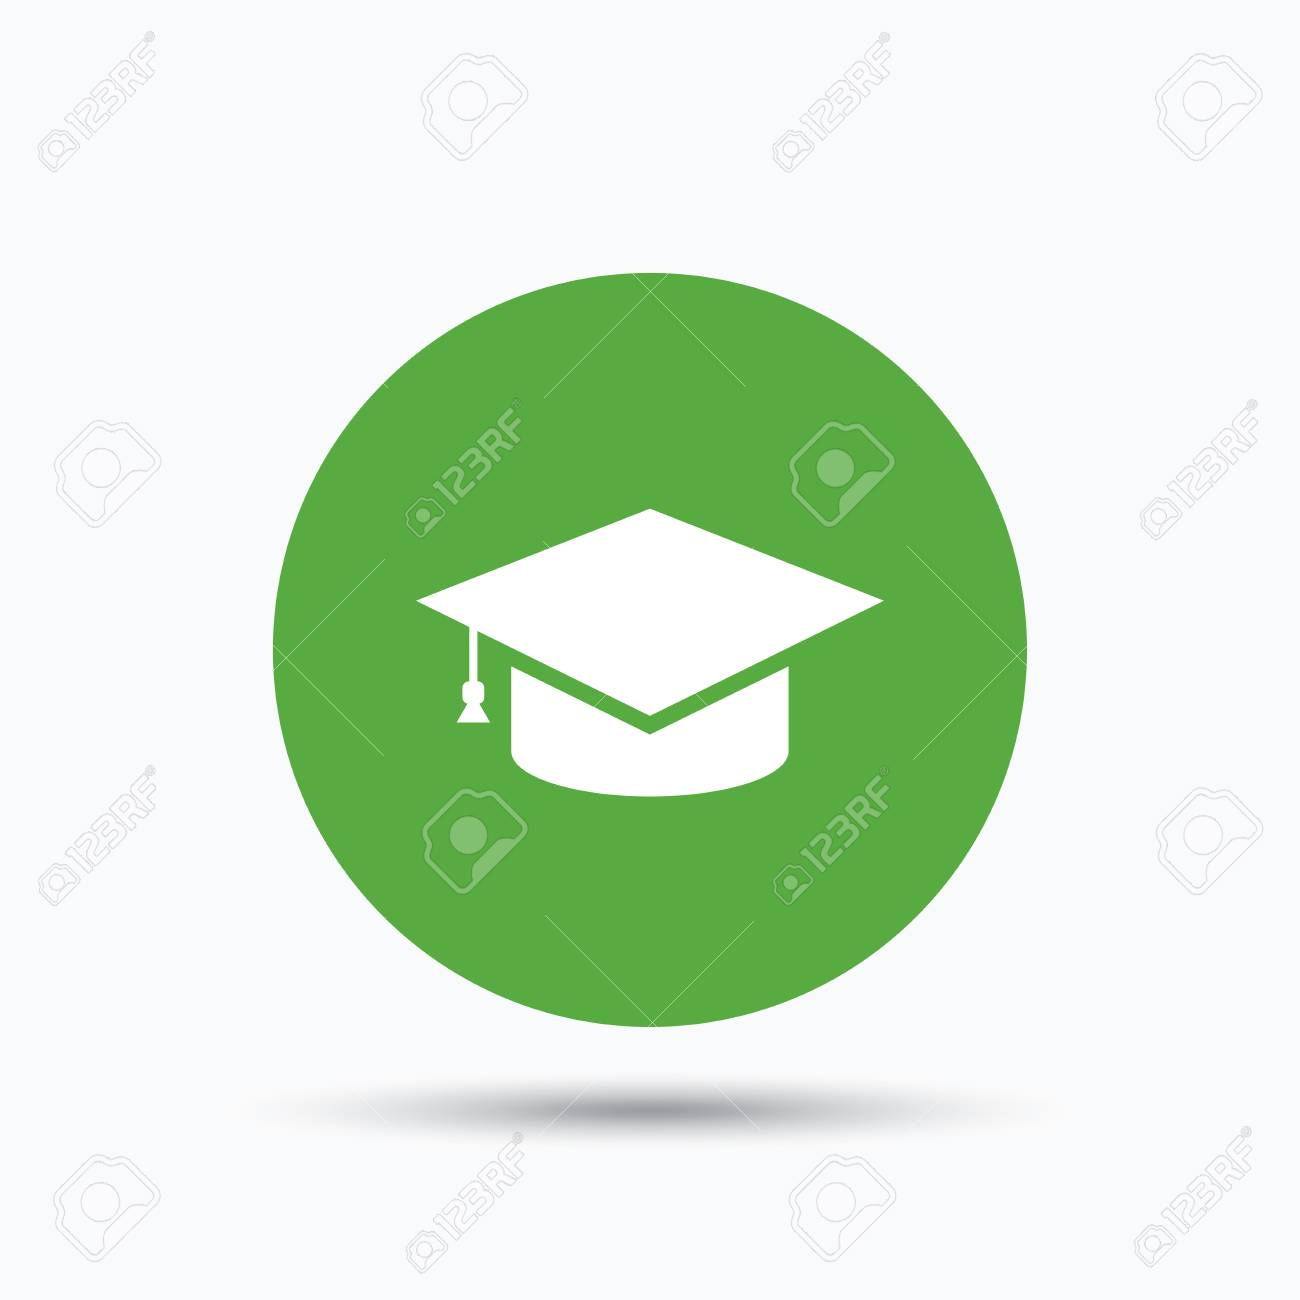 5a09a518300 Education icon. Graduation cap symbol. Flat web button with icon on white  background.